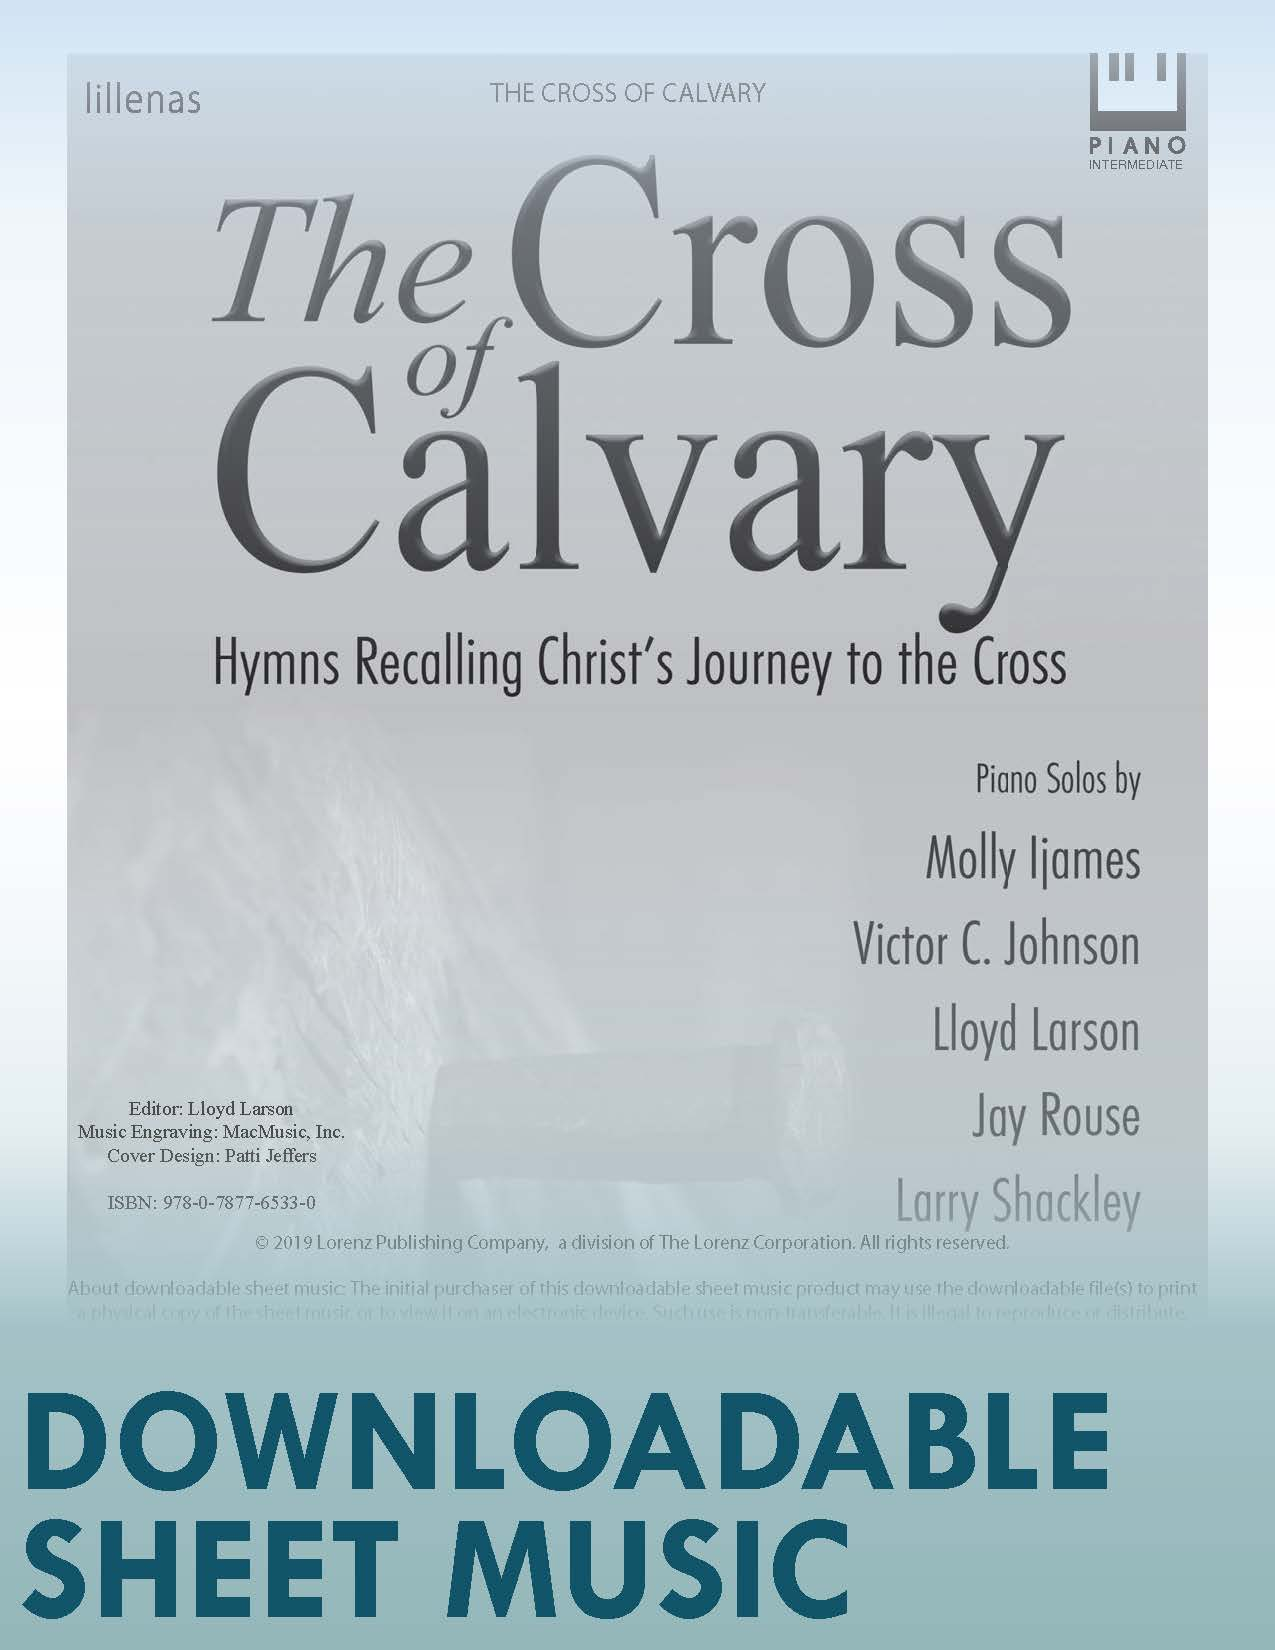 The Cross of Calvary - Digital Download